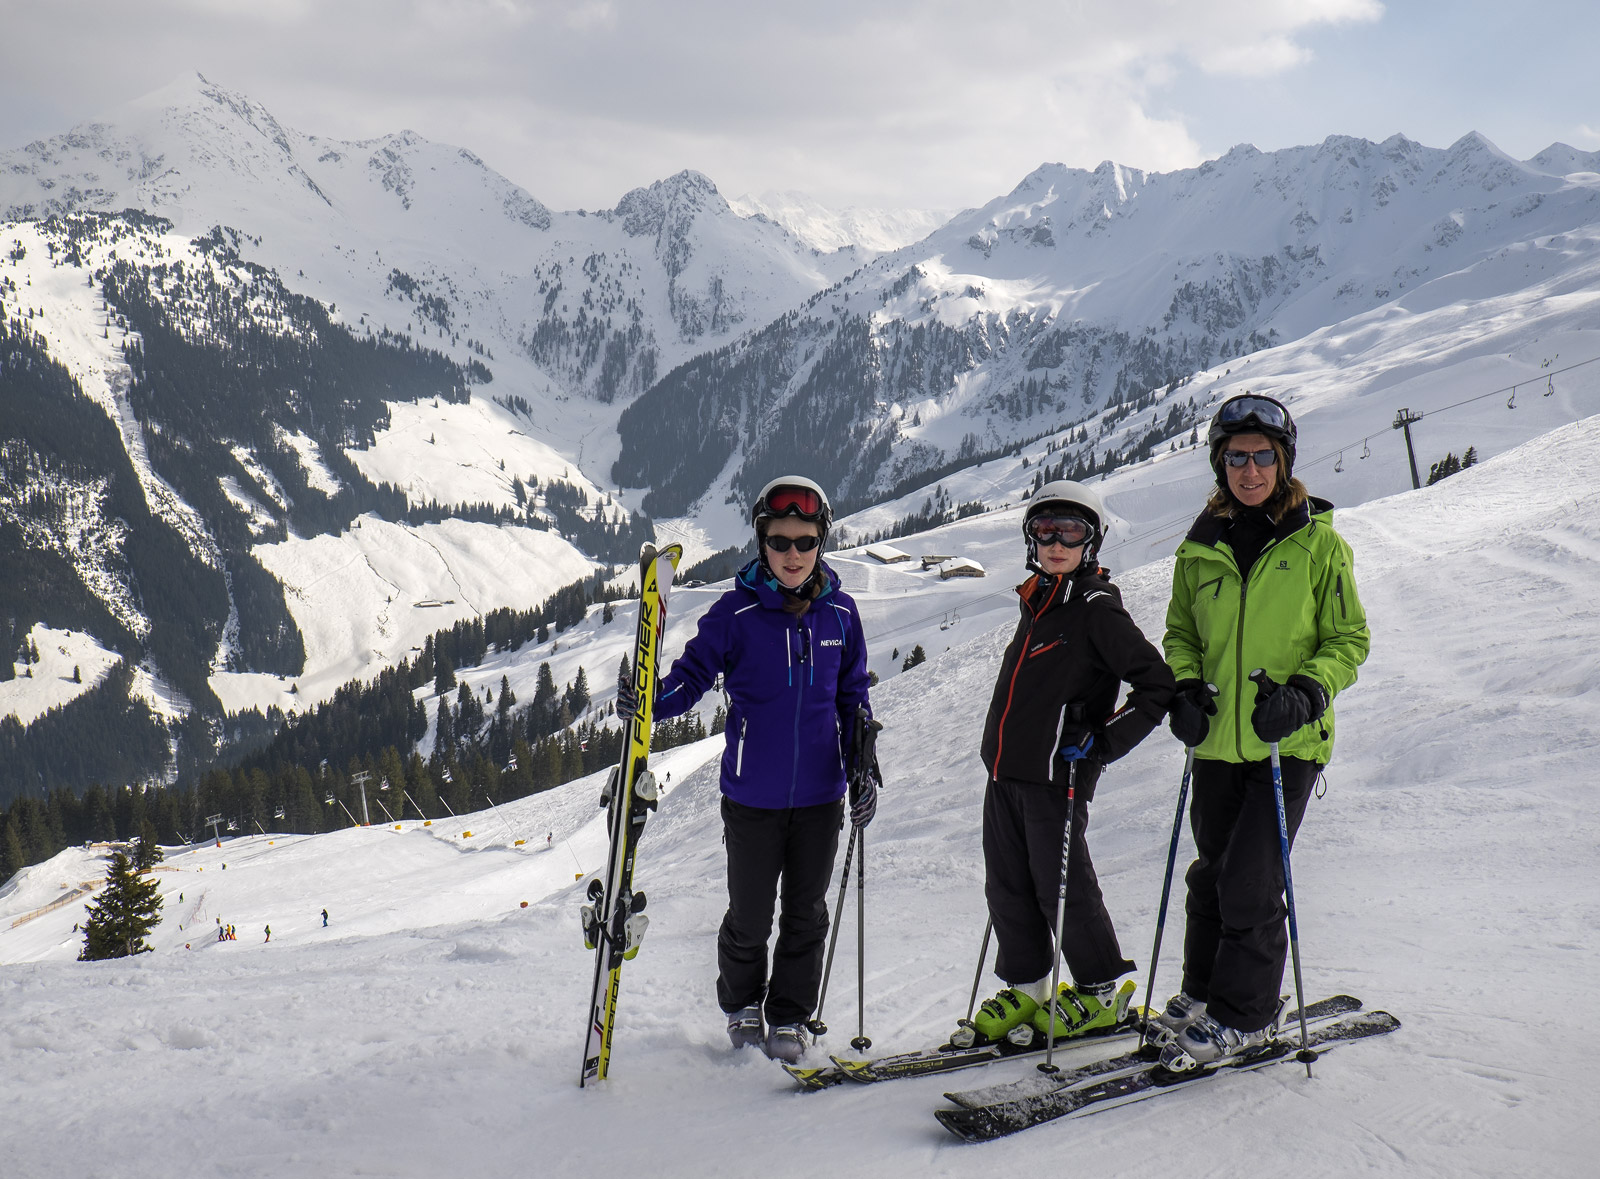 Ben, Lauren and my wife Hilary posing at the top of the gondola station in front of the immensely beautiful Austrian Alps at...